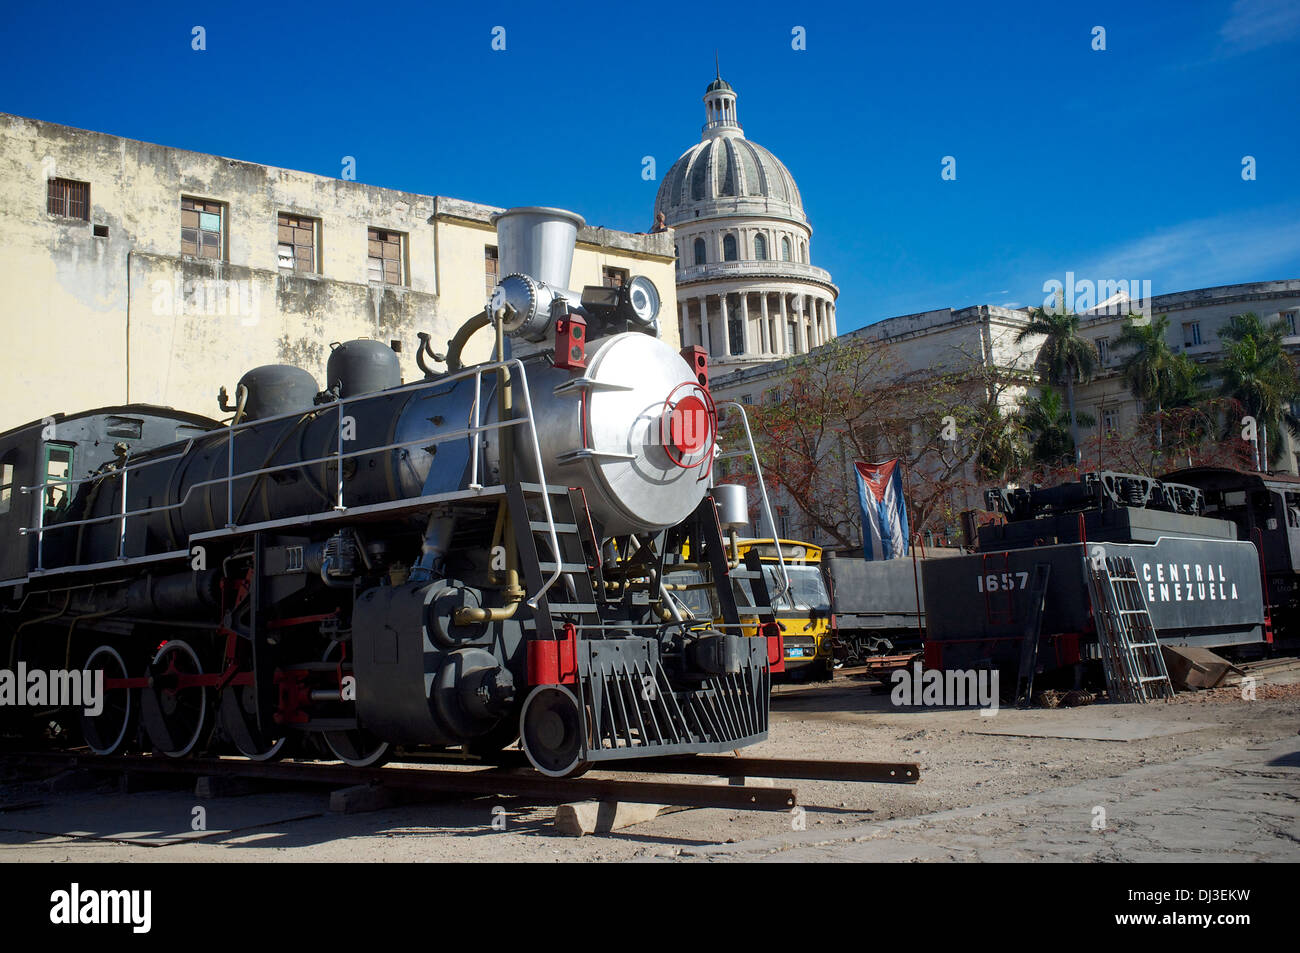 Restored steam engines, Havana, Cuba - Stock Image